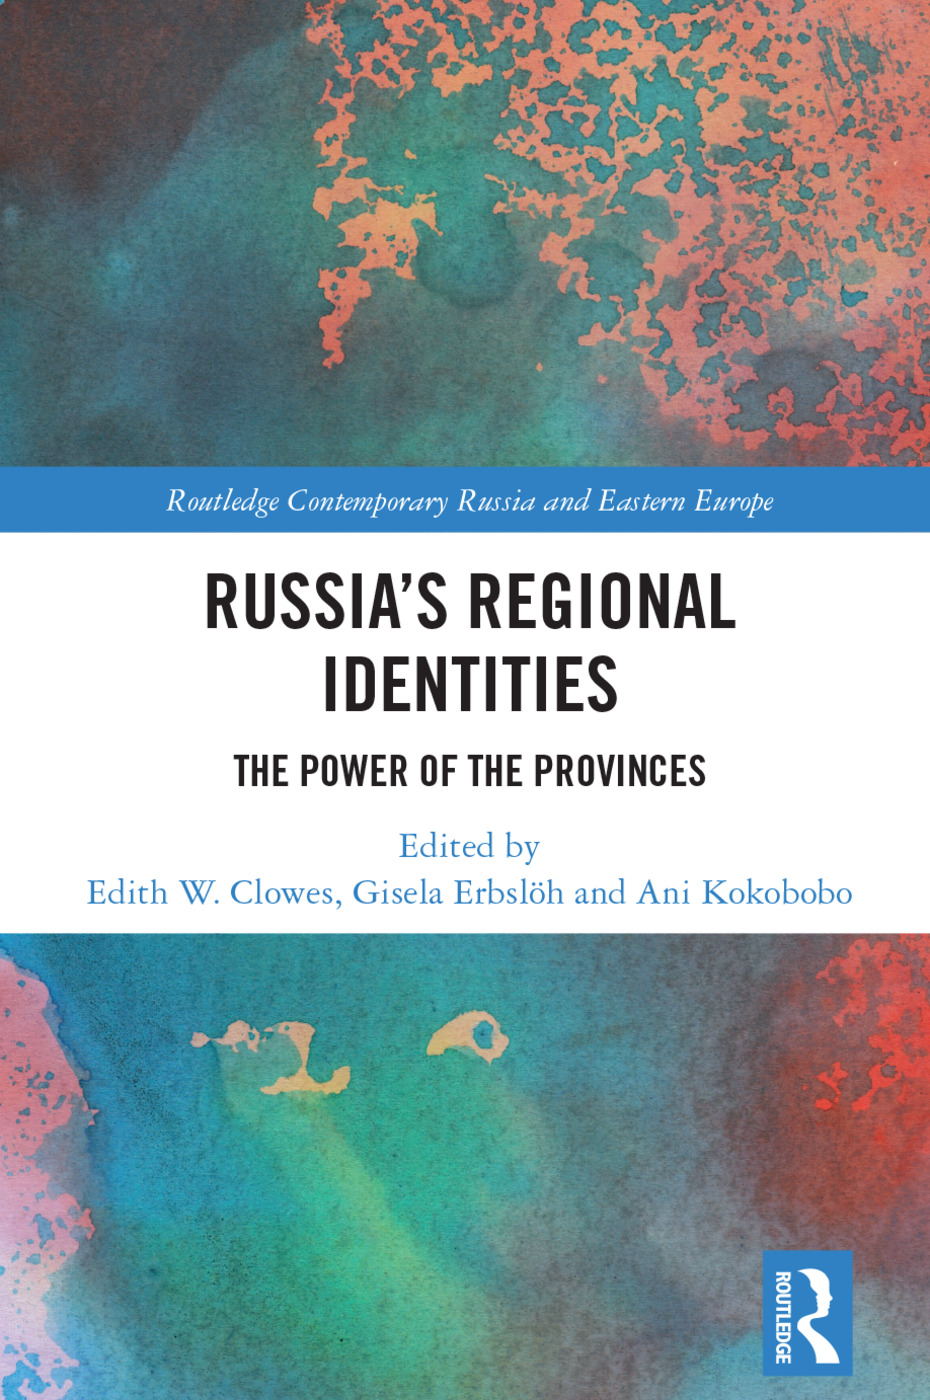 Russia's Regional Identities: The Power of the Provinces book cover